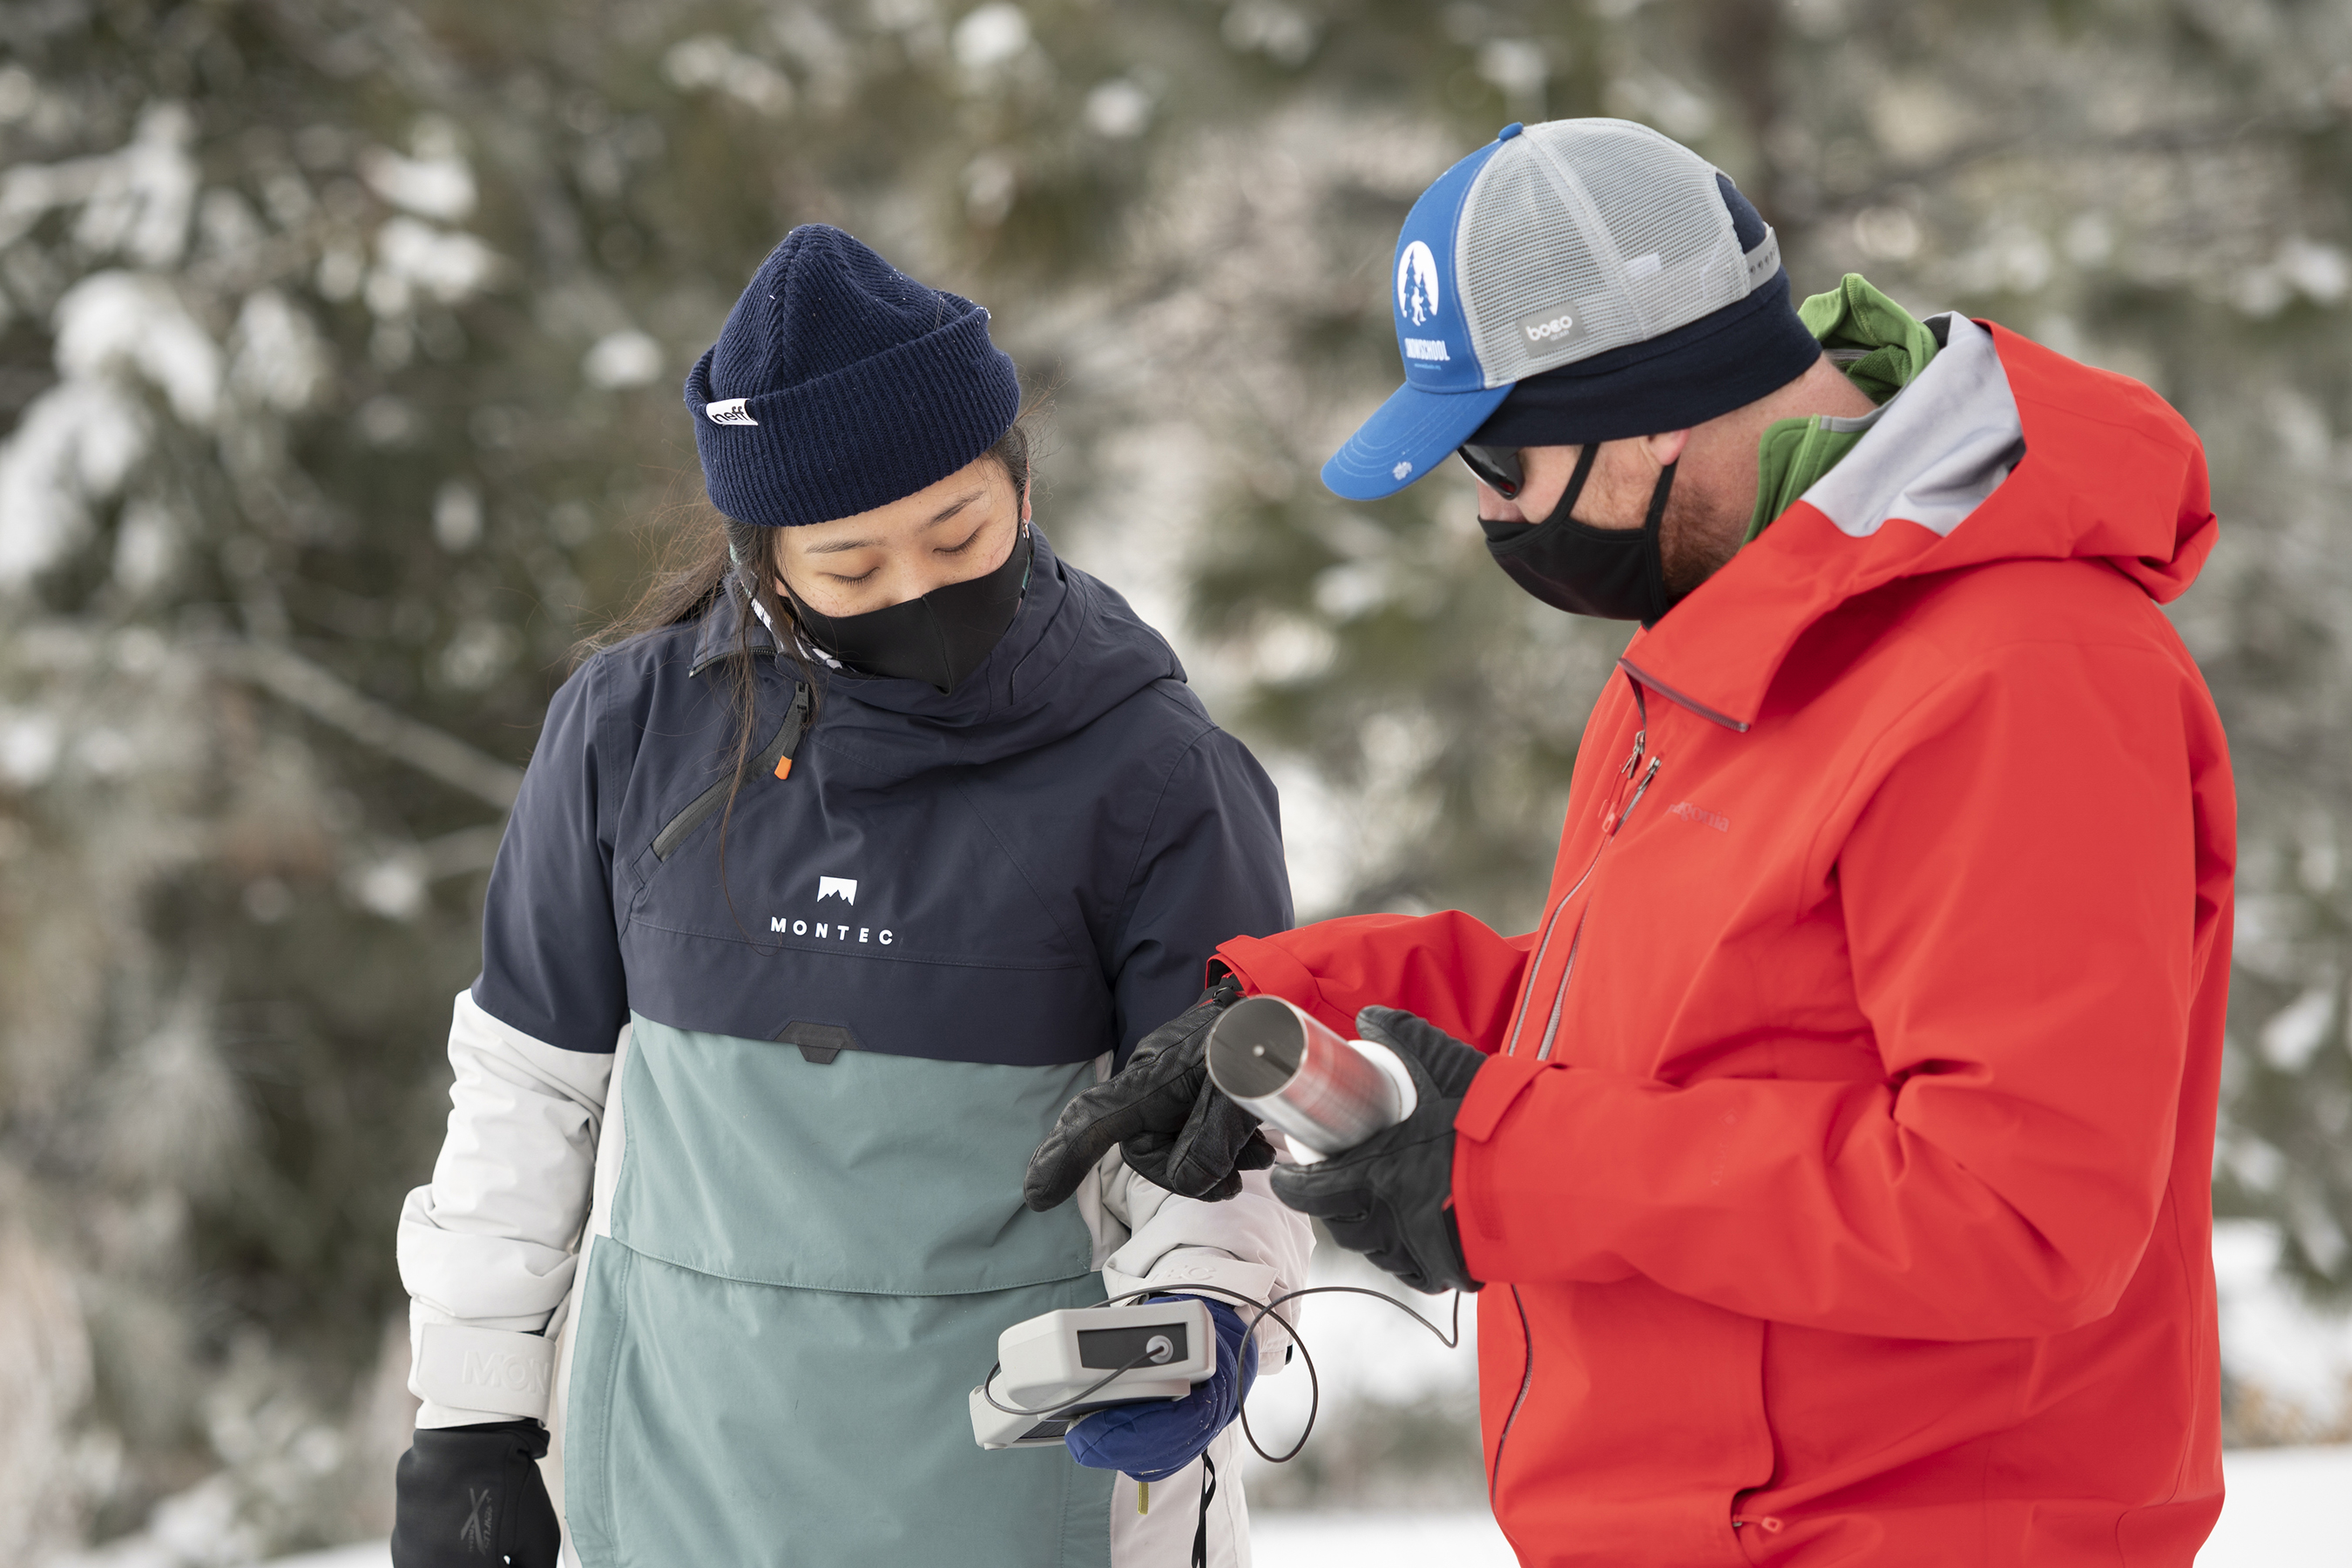 student and teacher look at device in snow